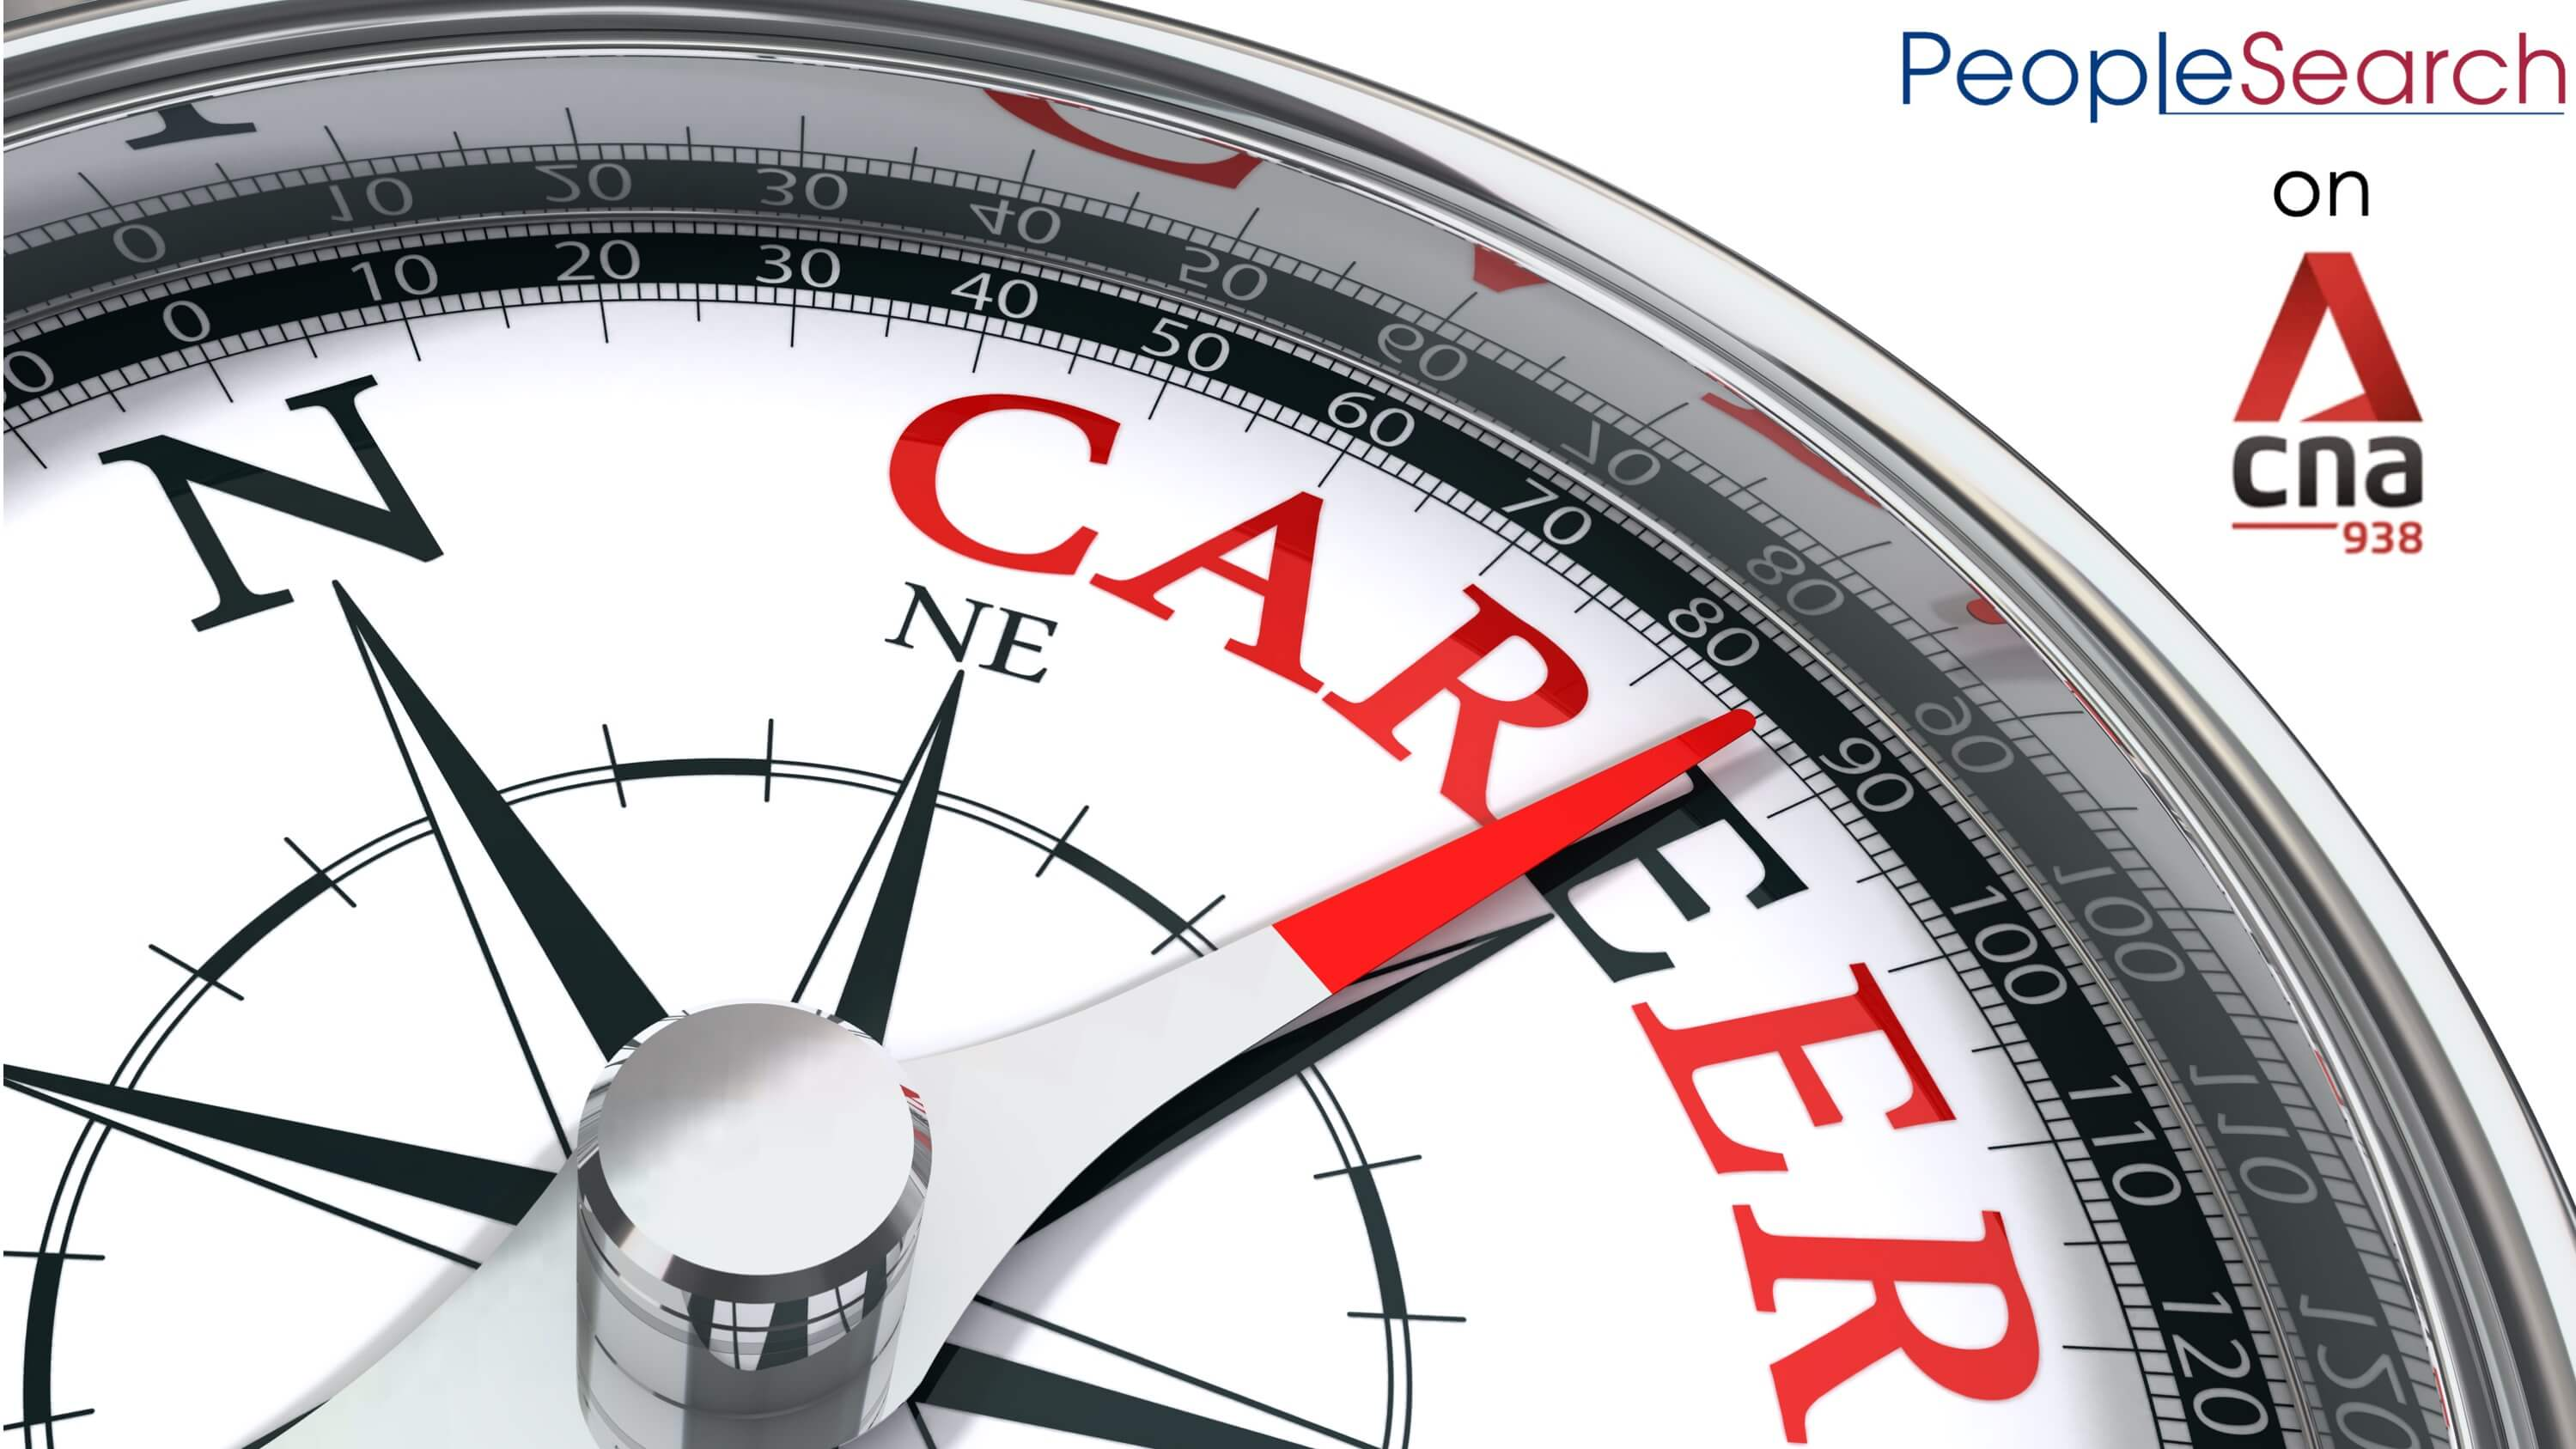 Graphic of career compass with CNA 938 and PeopleSearch logo